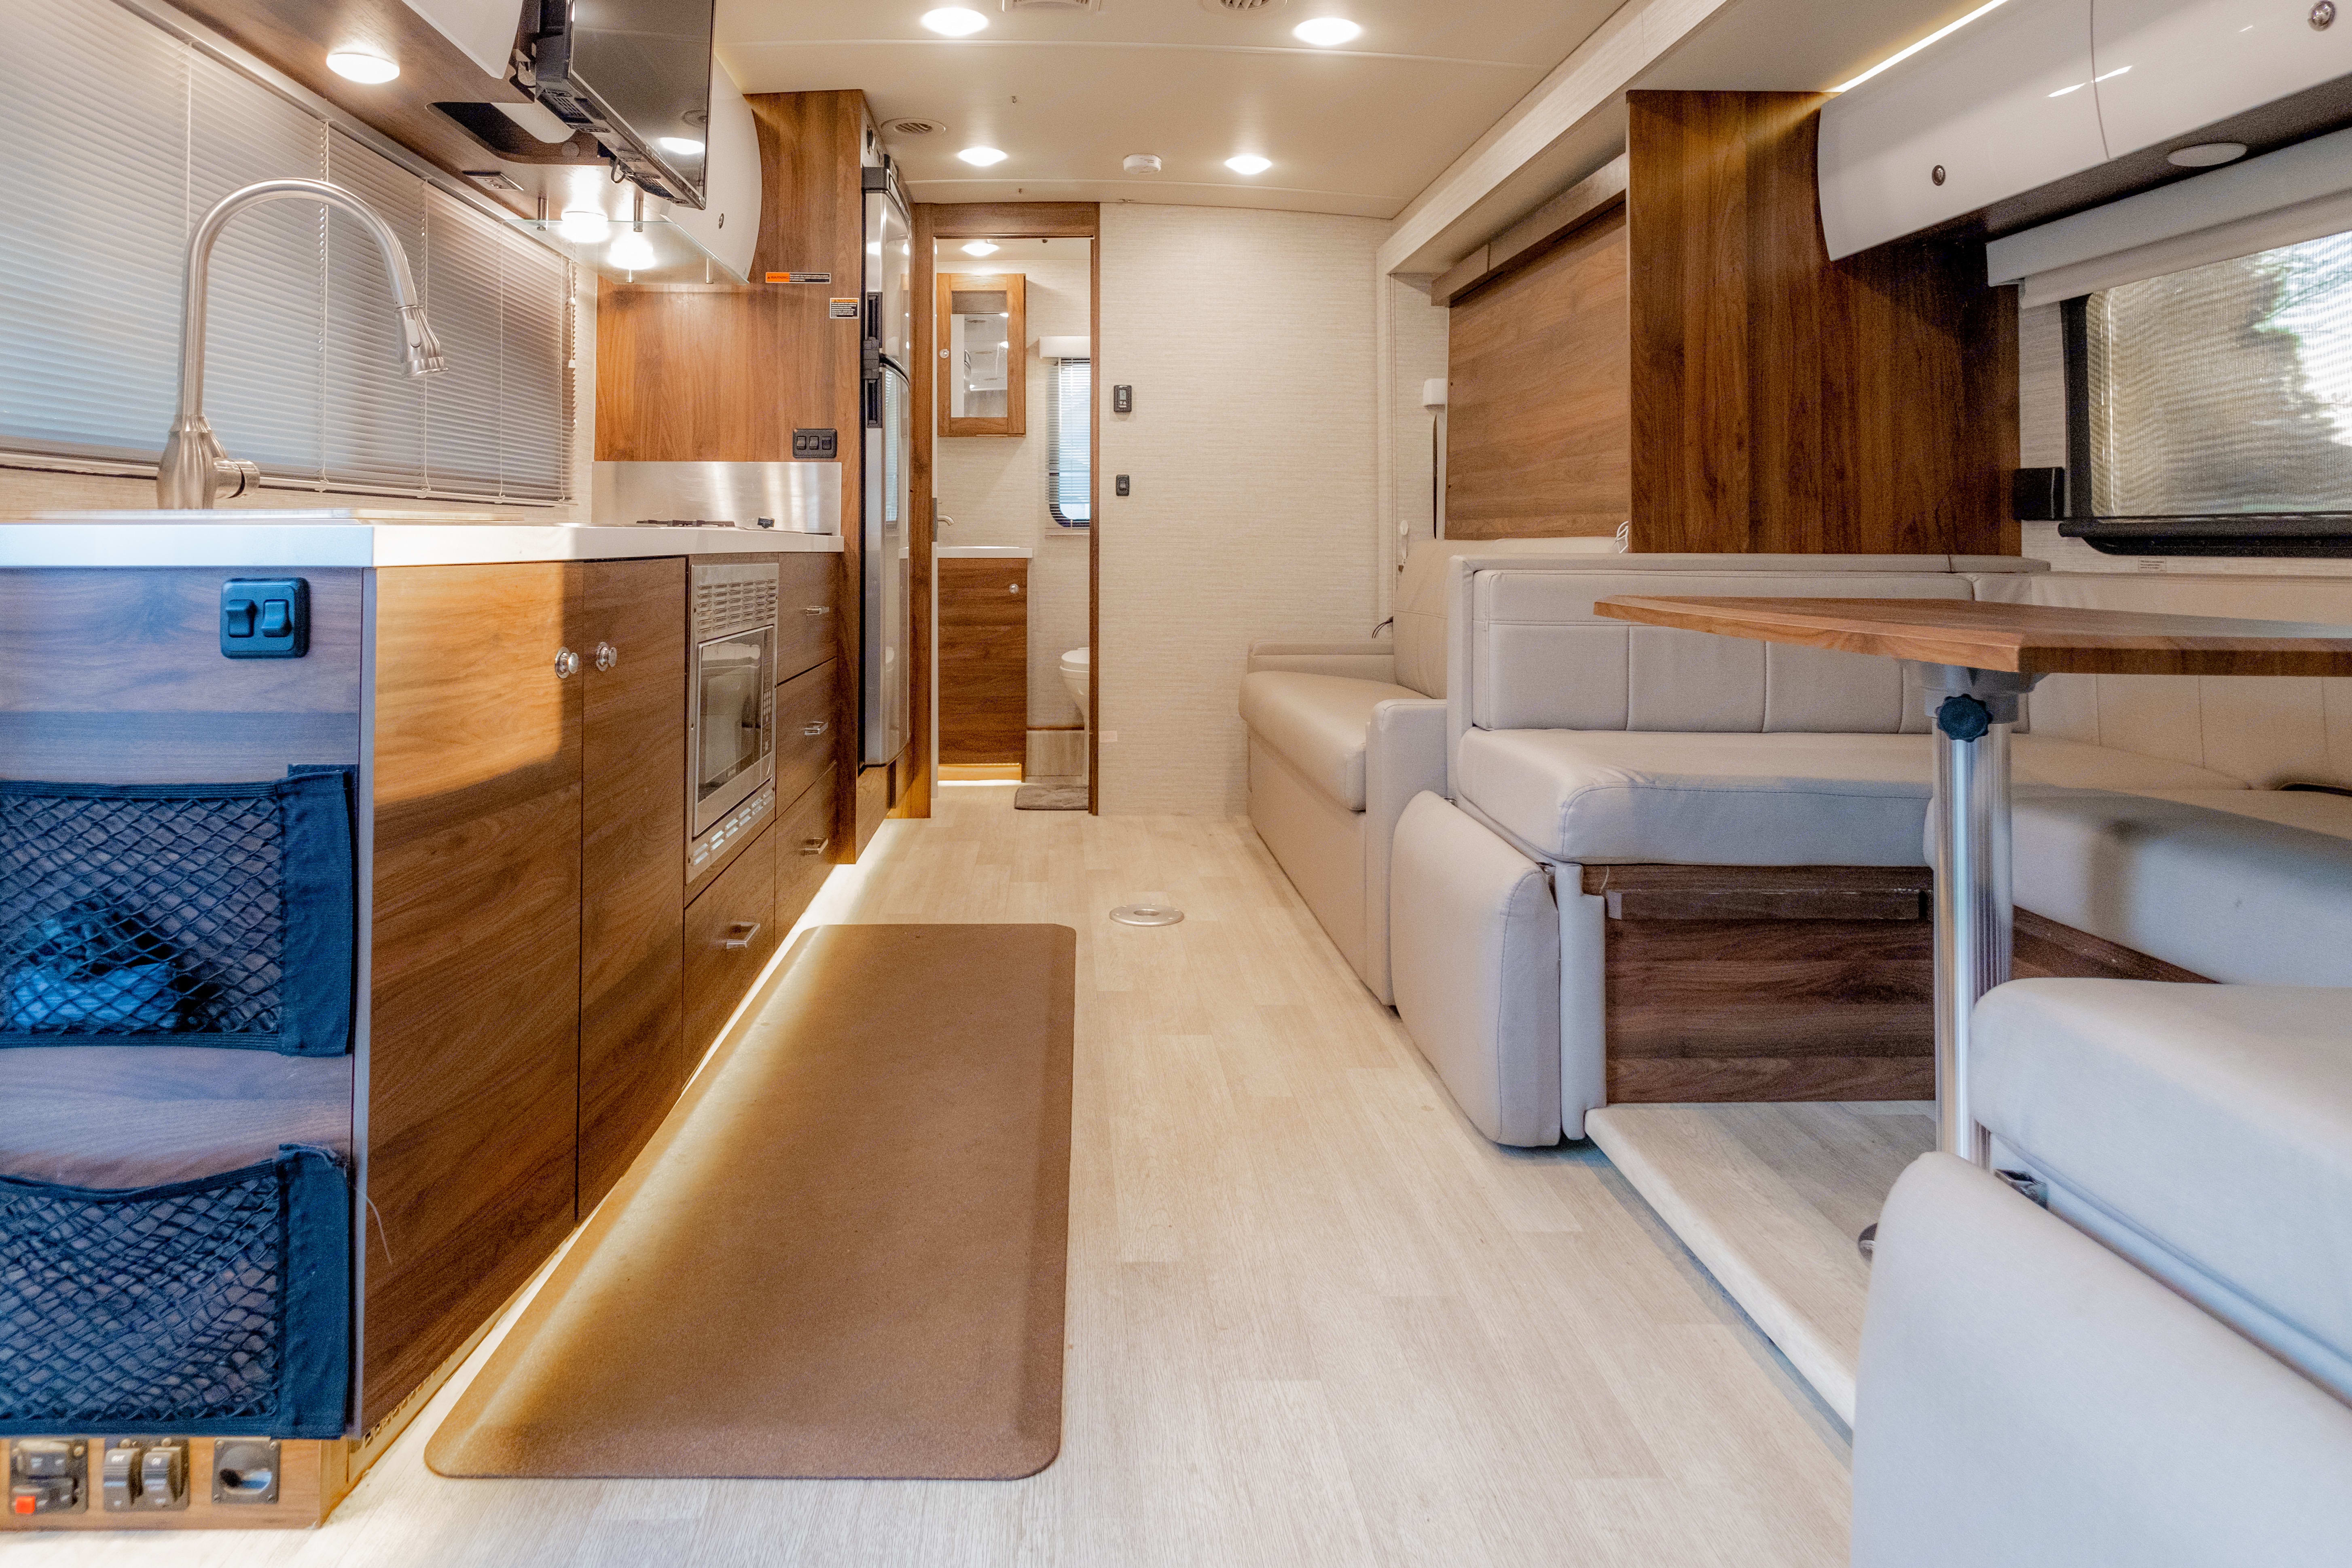 Very spacious with the slide out. You can also still use the kitchen with the slide in which I like when traveling with my 3 year old.. Winnebago Navion 24D 2020